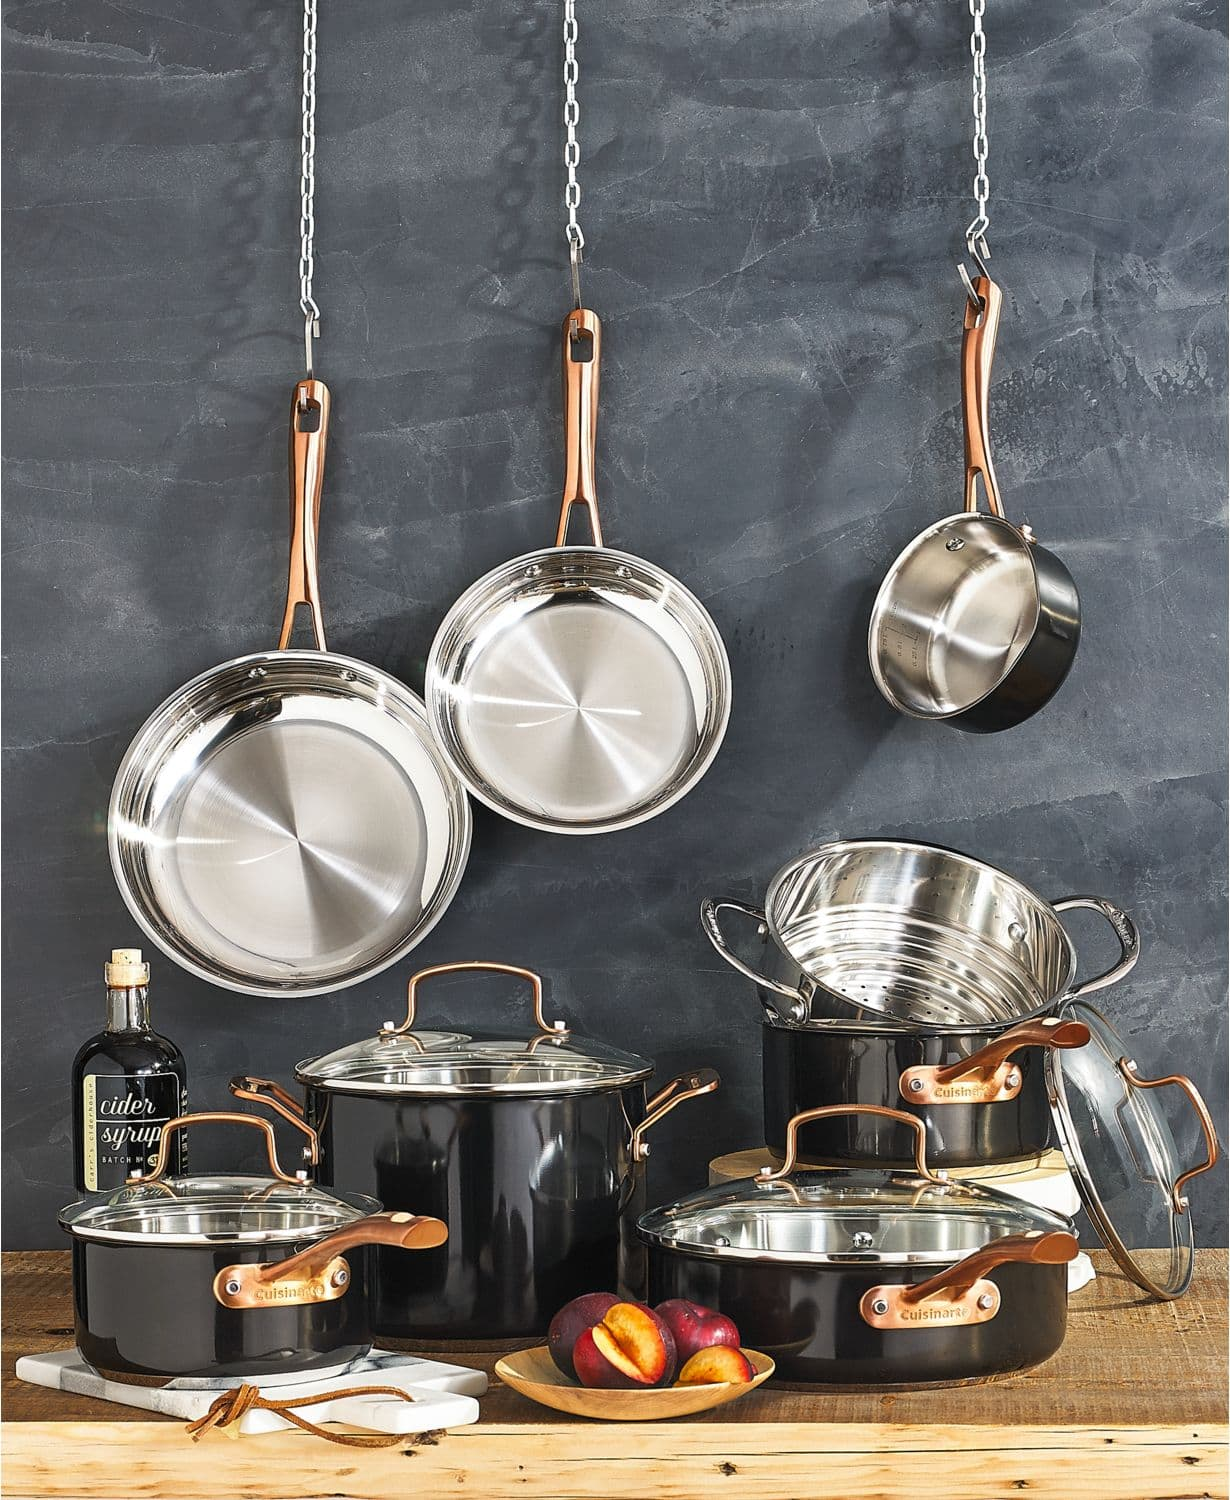 Cuisinart 12-Pc Stainless Steel Cookware Set and Free 3PC Nonstick Bakeware Set @149 $149